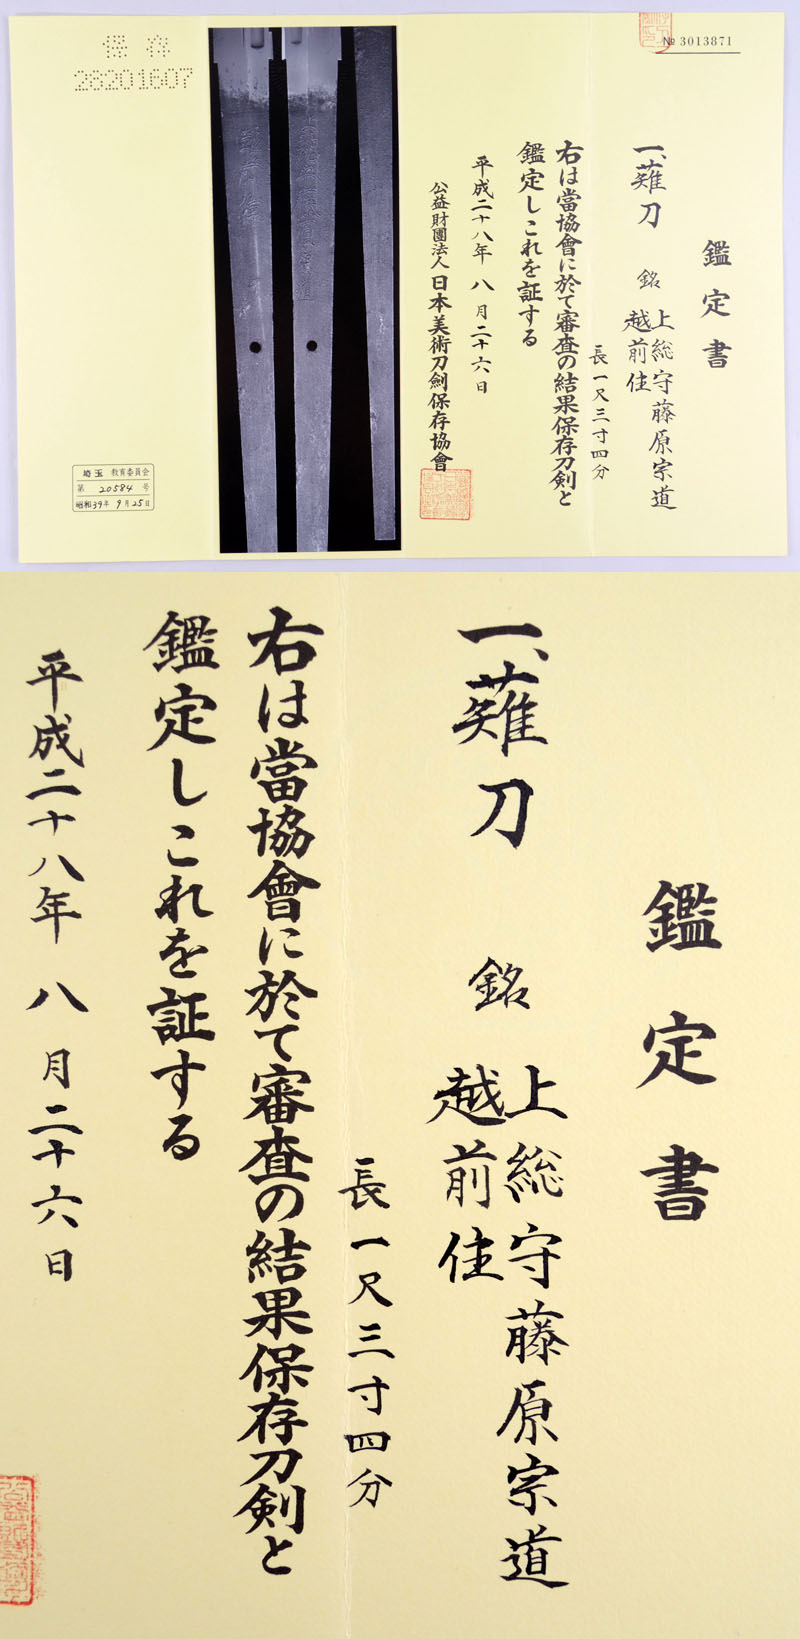 上総守藤原宗道 Picture of Certificate